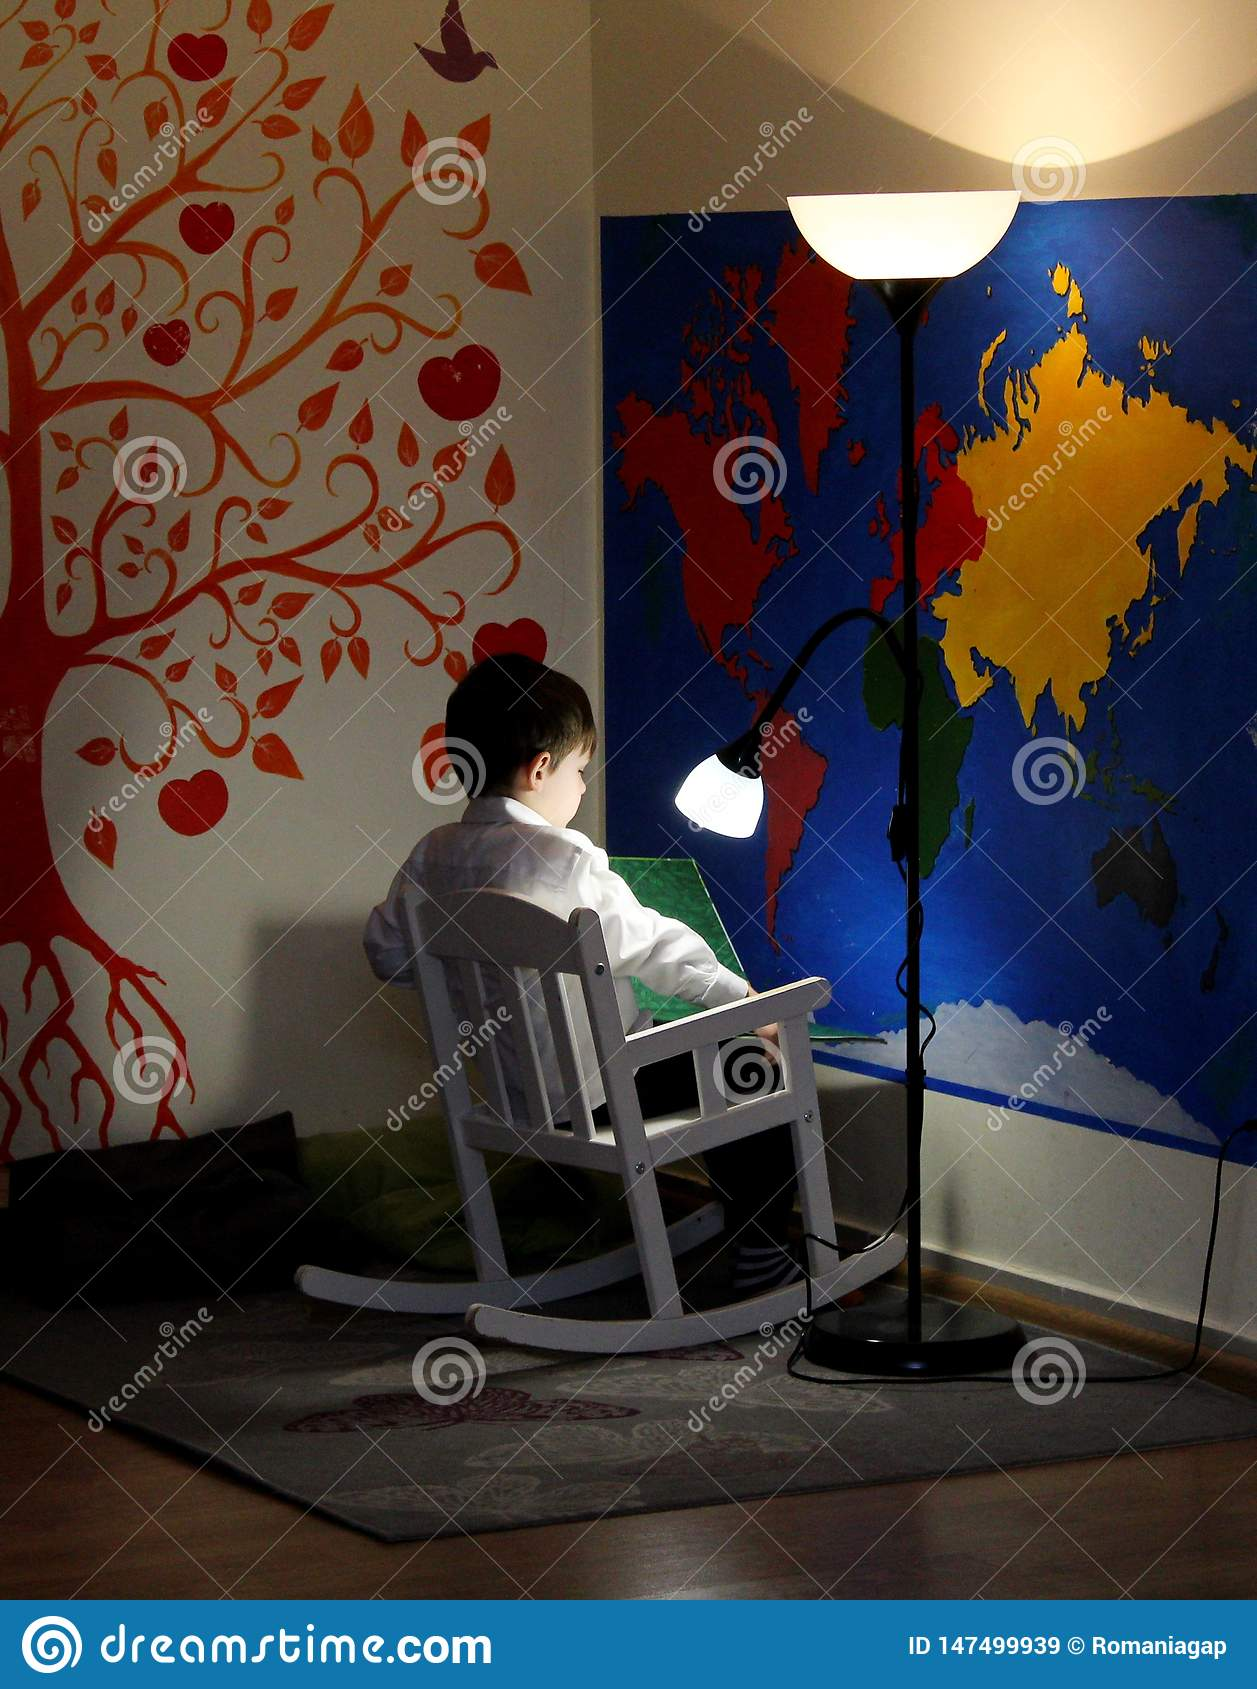 Phenomenal A Little Boy Sitting In A Rocking Chair Reads And A Lamp Pdpeps Interior Chair Design Pdpepsorg